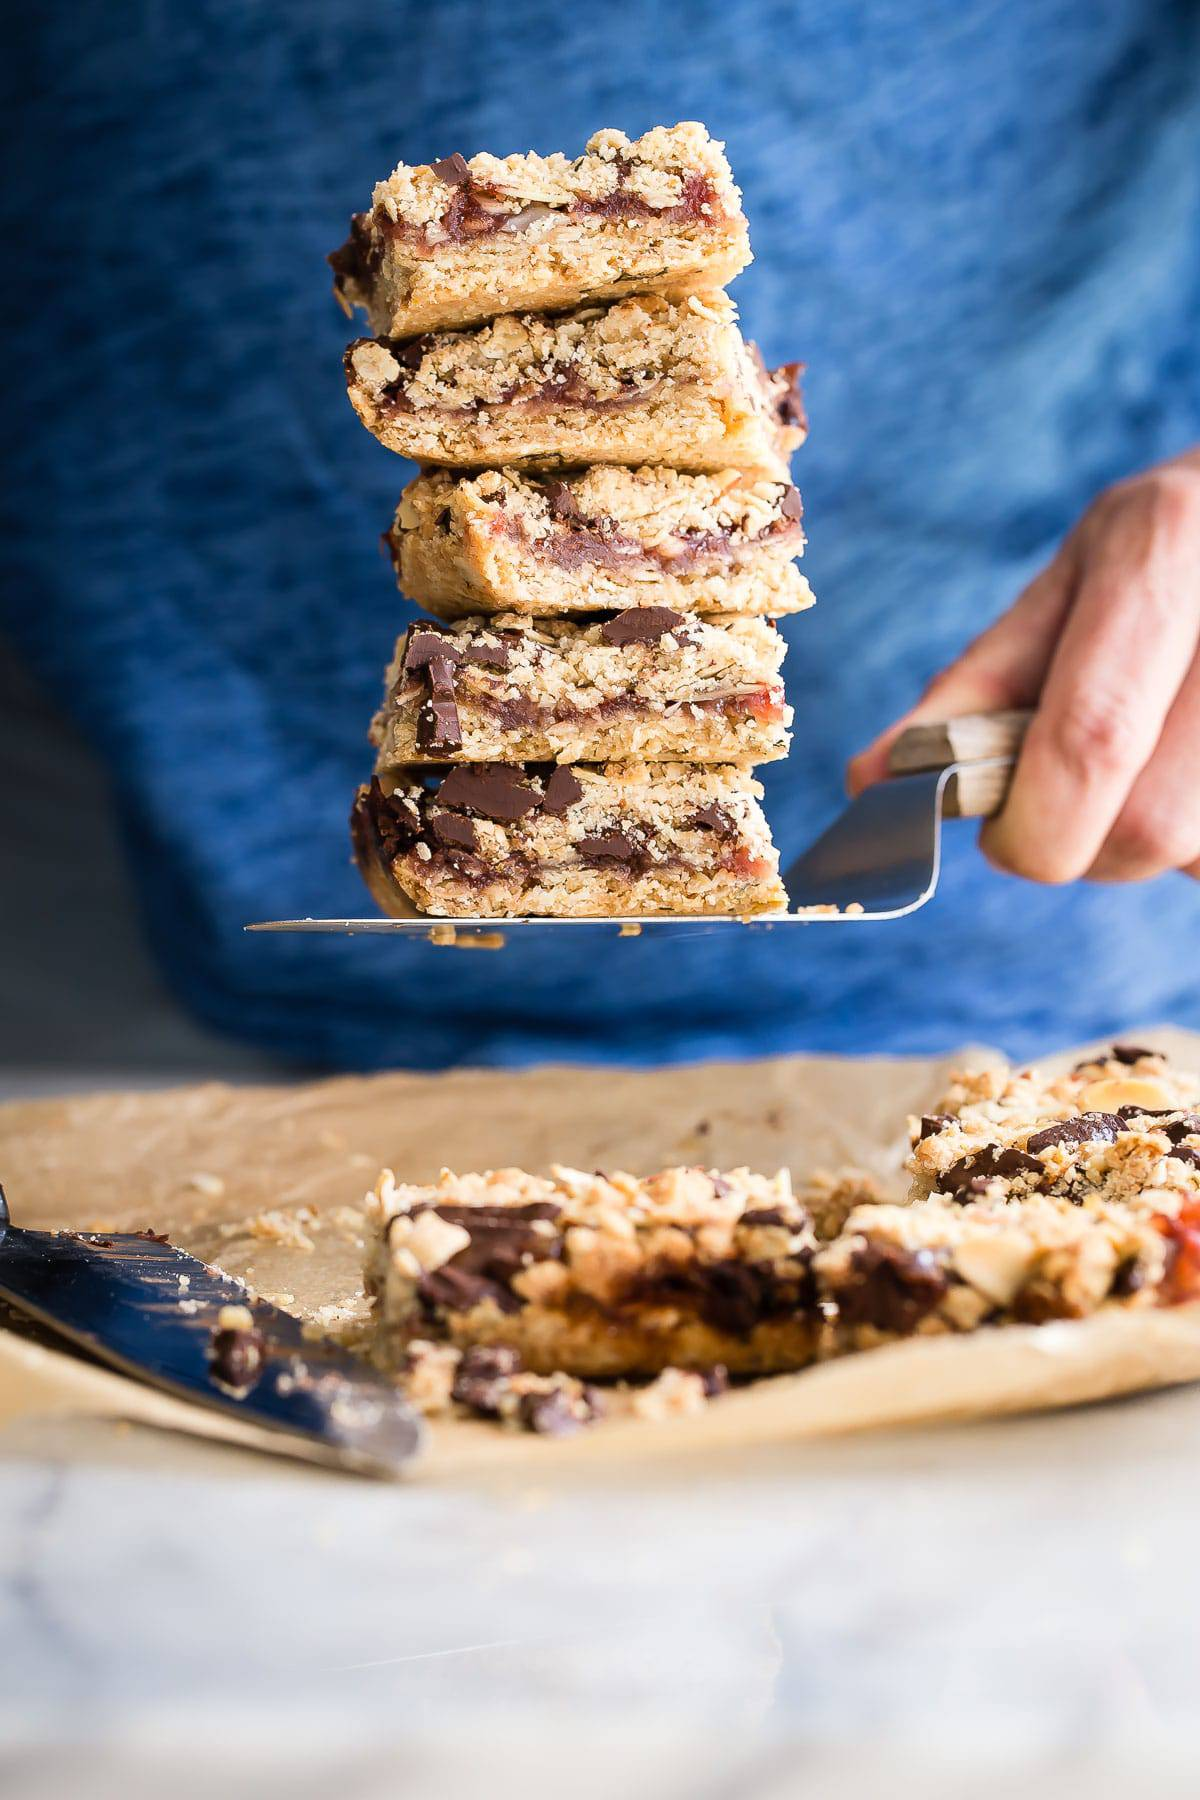 Strawberry Oat Bars with Thyme and Chocolate Chunks